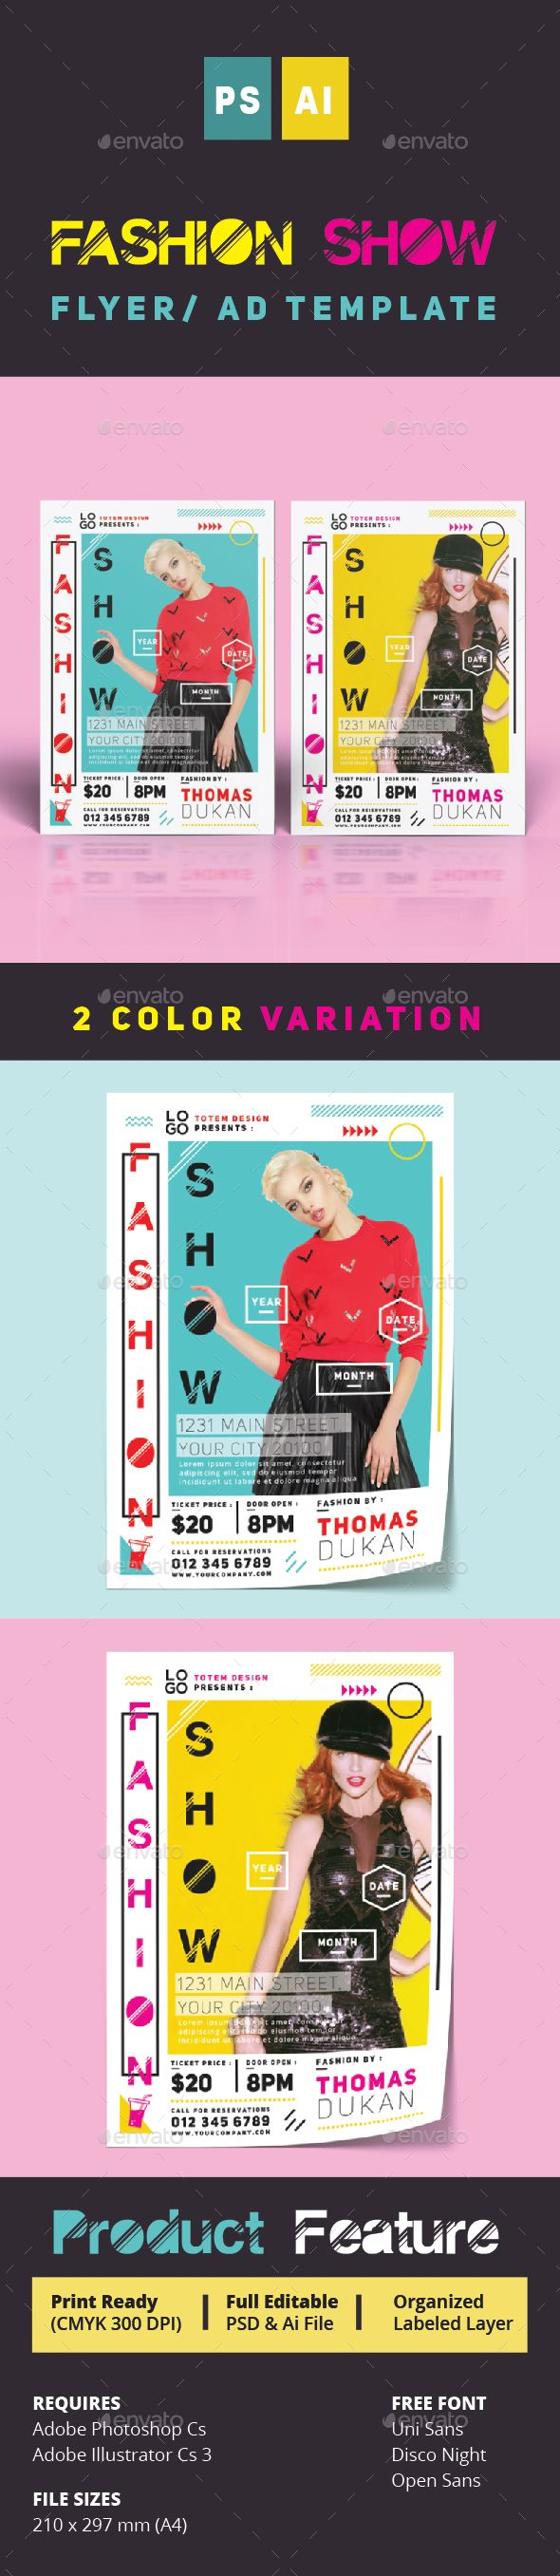 Fashion Show Flyer #posh #poster #psd • Available here → http://graphicriver.net/item/fashion-show-flyer-/15622822?ref=pxcr